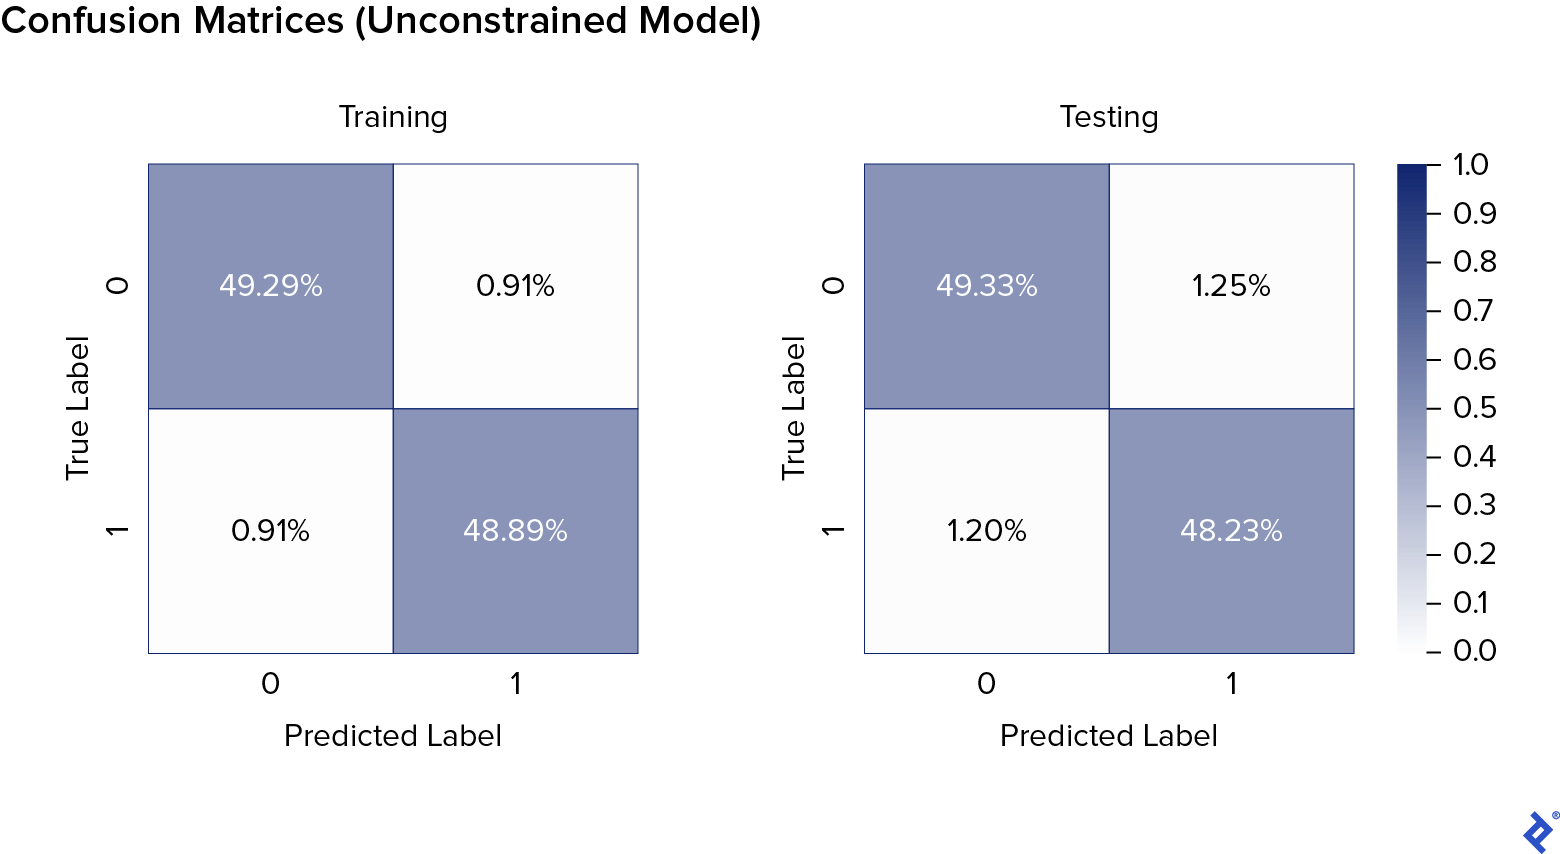 """Unconstrained model's training confusion matrix, a two-by-two checkerboard. The Y axis is called """"True Label,"""" with zero at the top and one at the bottom. The X axis is called """"Predicted Label,"""" with zero on the left and one on the right. The color scale goes from white at zero to dark blue at 0.5. The upper-left and lower-right squares are dark blue, at 49.29% and 48.89% respectively. The other two squares are close to white, both at 0.91%. To the right is a very similar chart but for testing rather than training, with, in reading order, 49.33%, 1.25%, 1.20%, and 48.23%."""